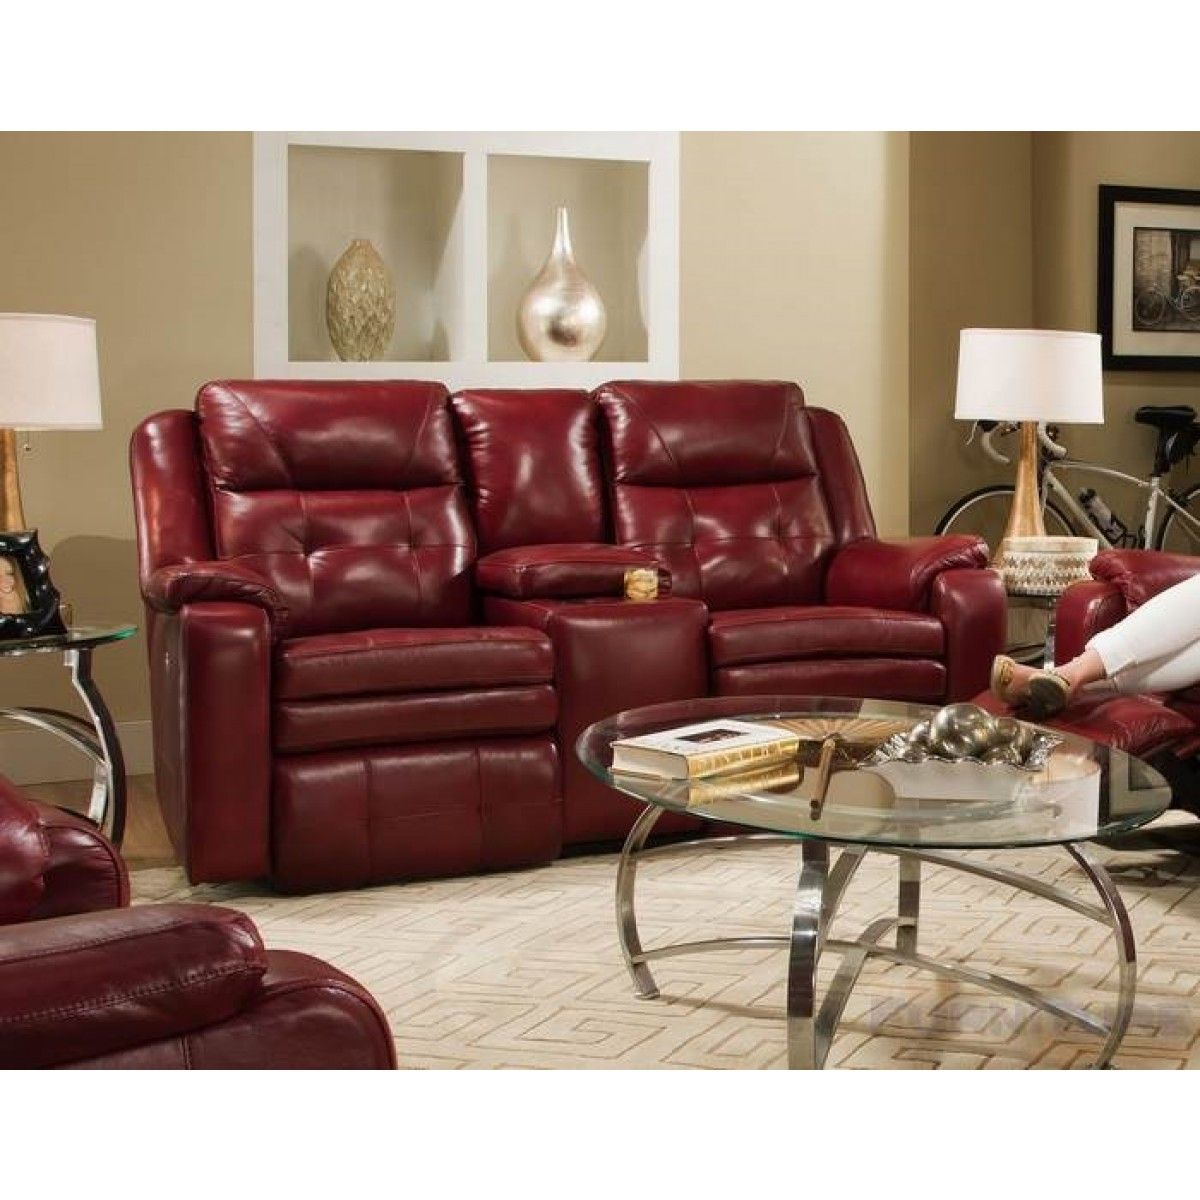 Southern Motion   Double Reclining Loveseat   850 21 | Great Furniture Deal